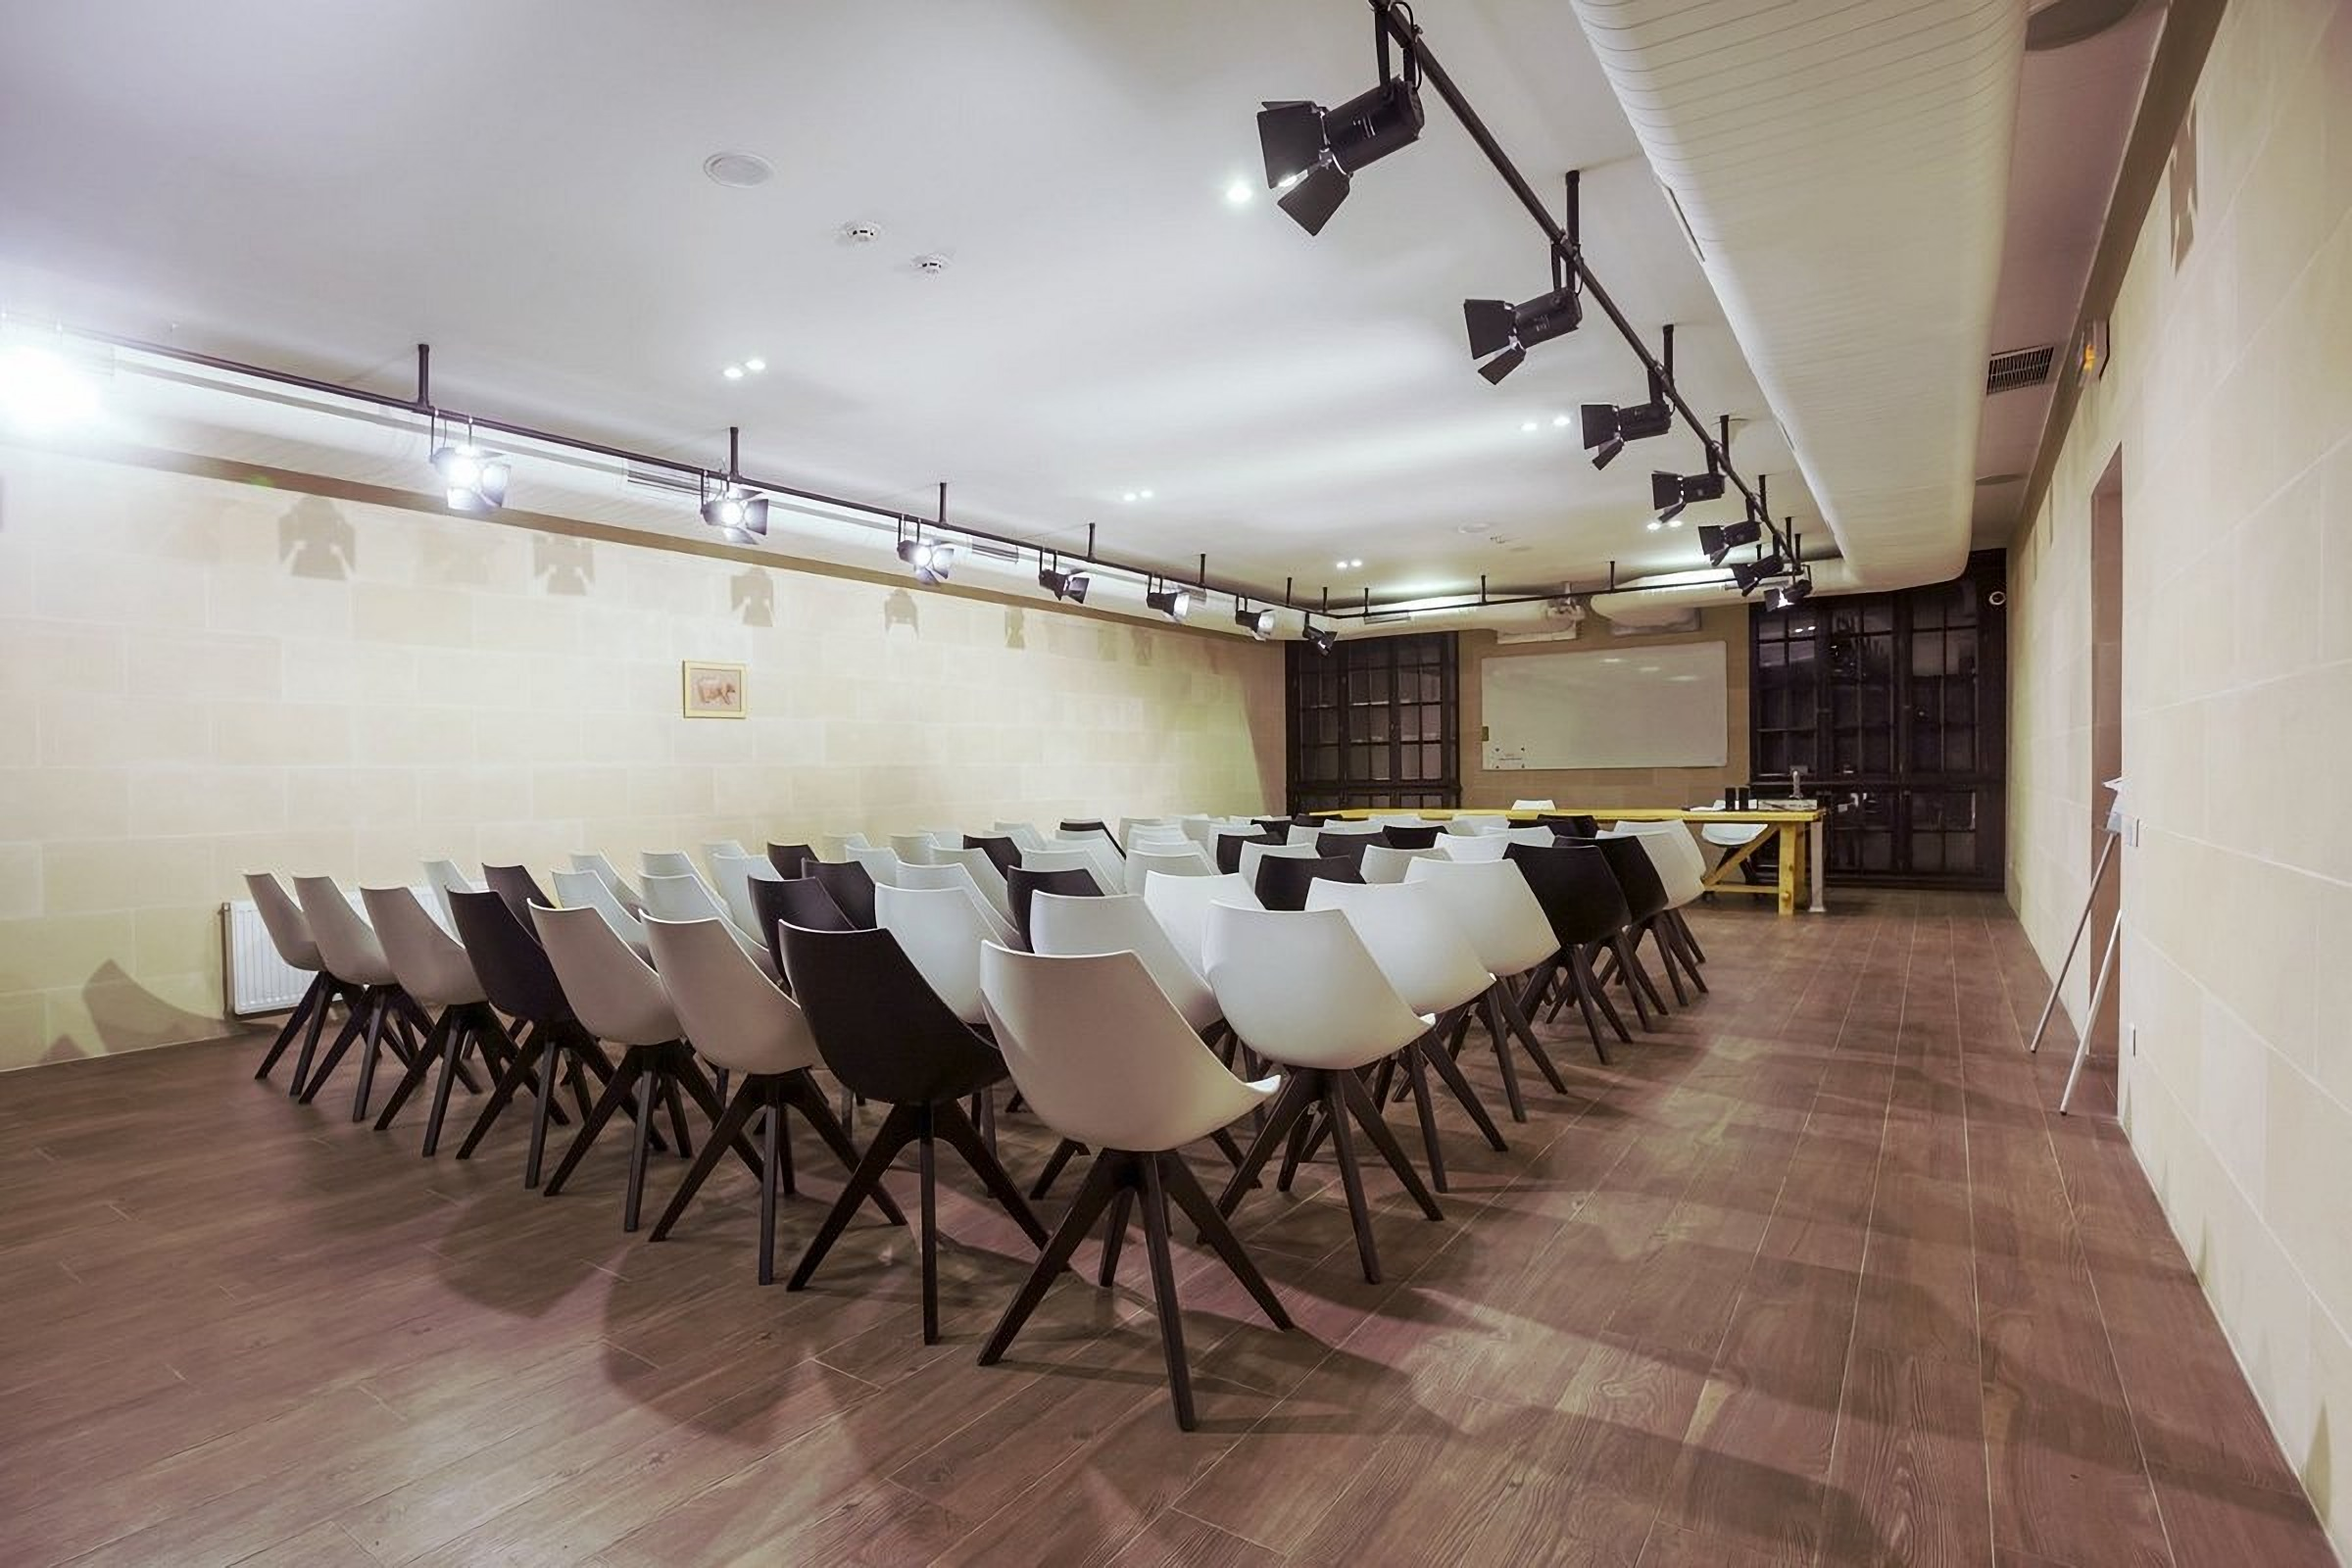 Conference room in the Wall Street Hotel Odessa Ukraine